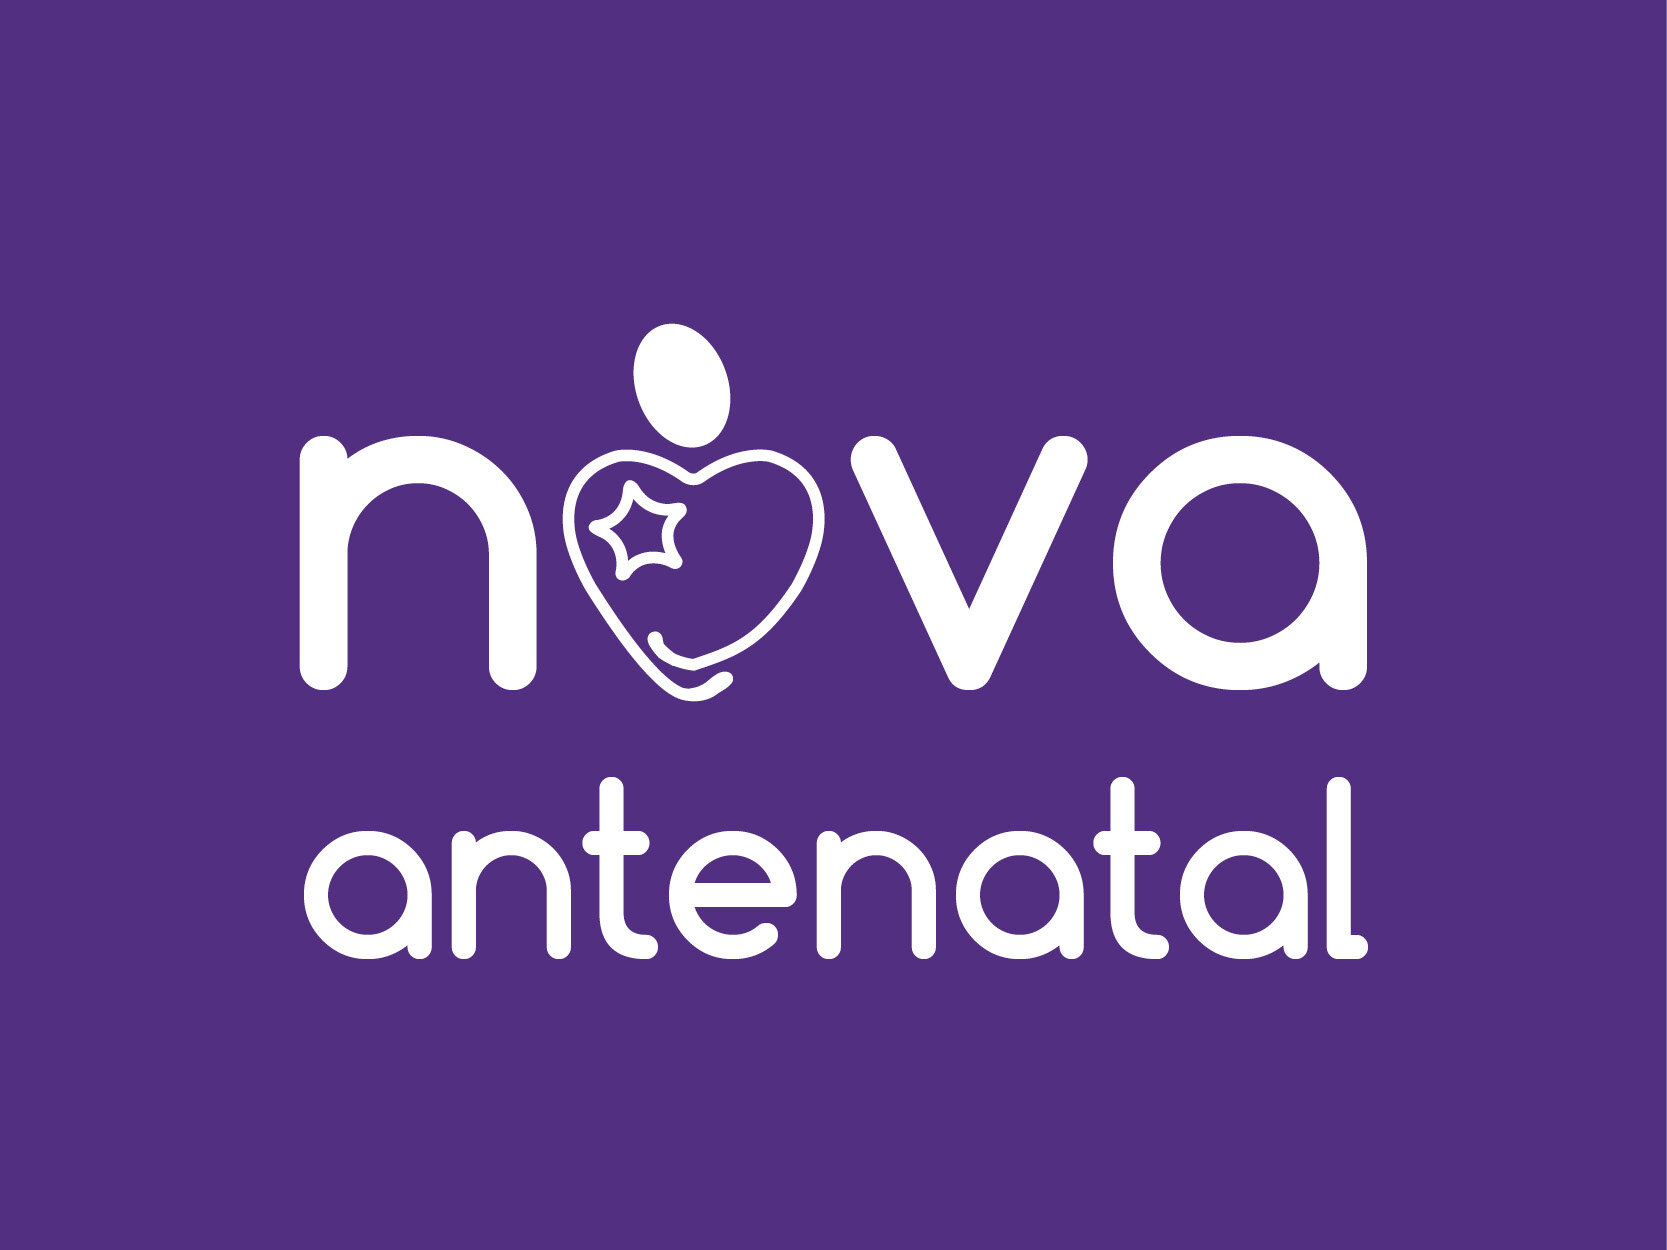 Compassionate Hypnobirthing+ Antenatal Classes - Our classes are perfect for parents whose pregnancies are high risk, babies conceived by ivf, sperm donors, solo mums, surrogates, parents who have recently had a family bereavement. Or even parents that just want a really nurturing space to prepare for birth and beyond. Everyone is welcome.